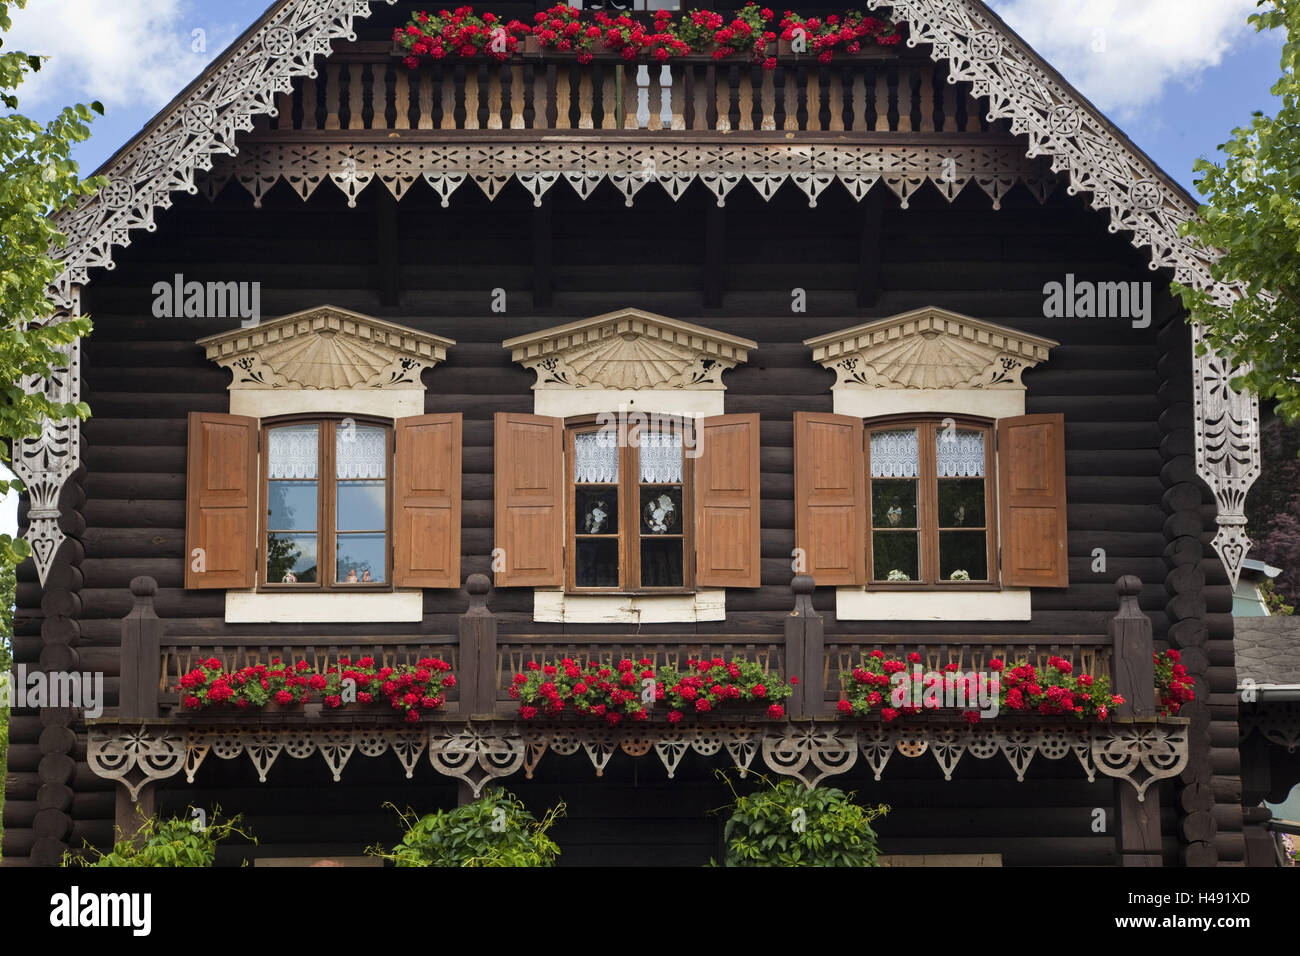 brandenburg village stockfotos brandenburg village bilder alamy. Black Bedroom Furniture Sets. Home Design Ideas